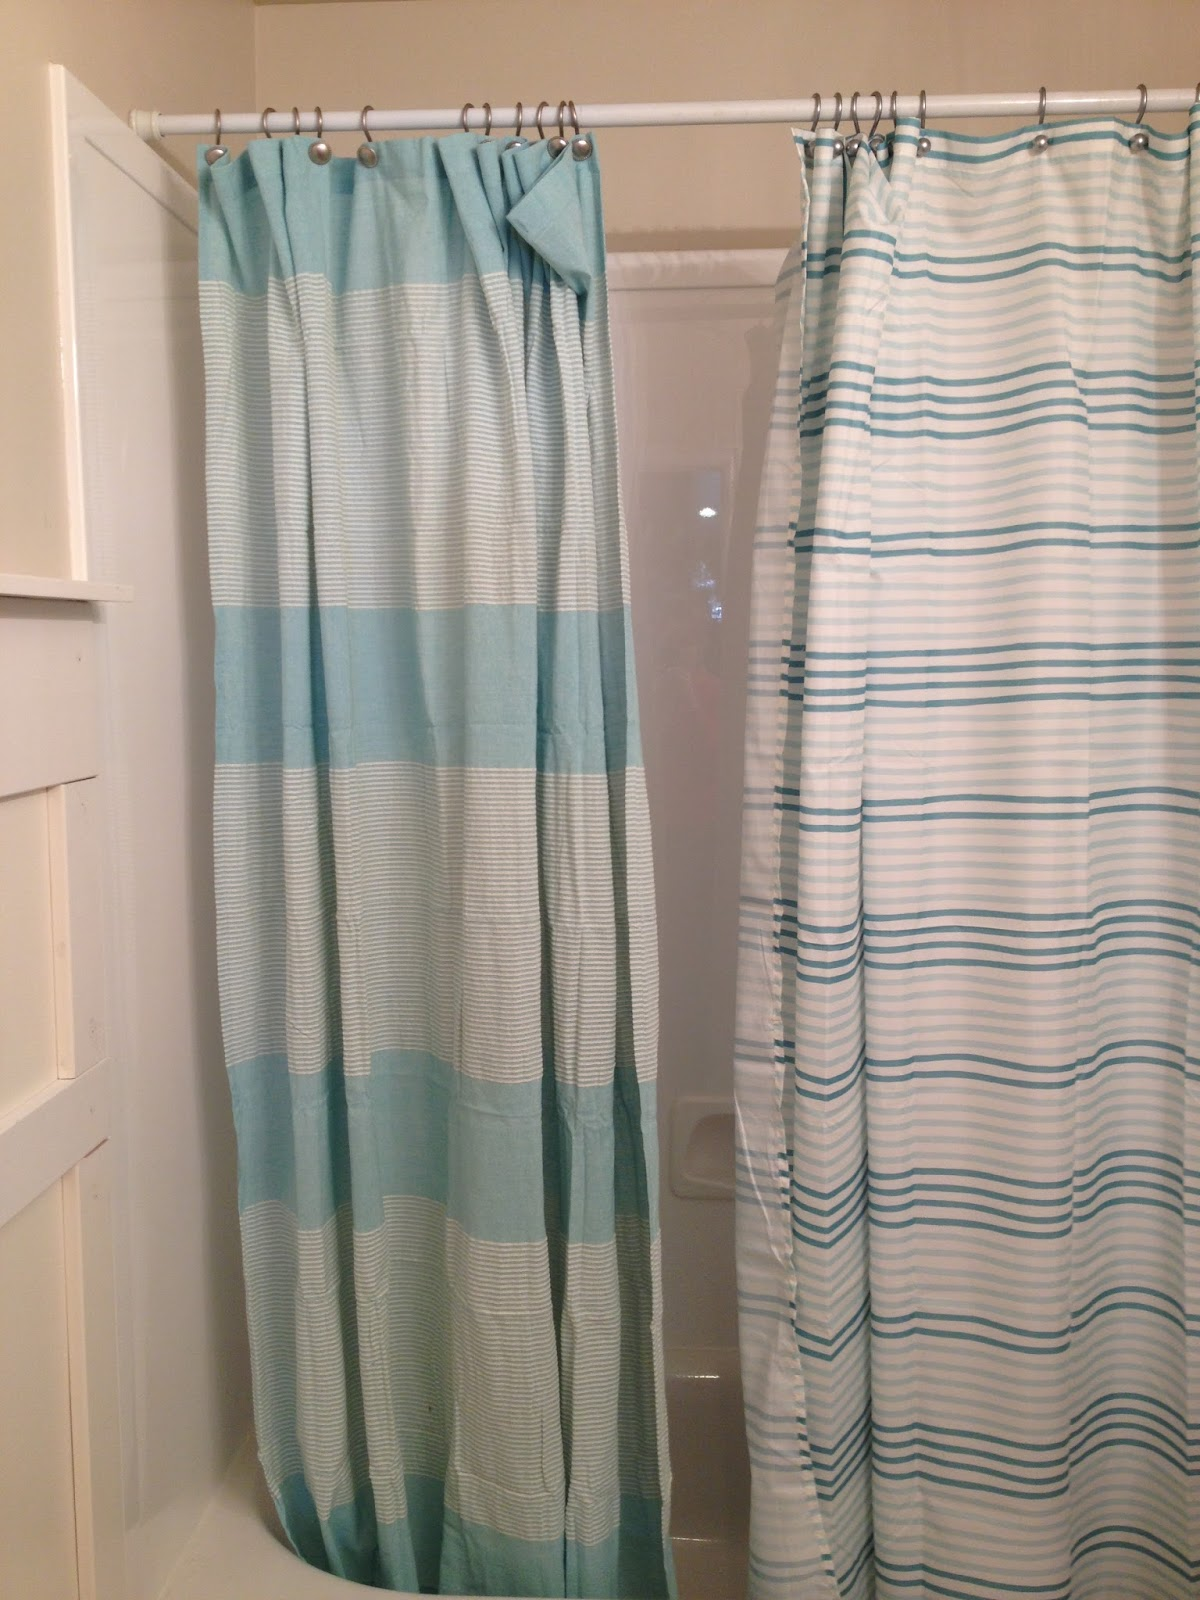 teal striped shower curtain. Striped aqua shower curtains K I S  Keep It Simple Sister